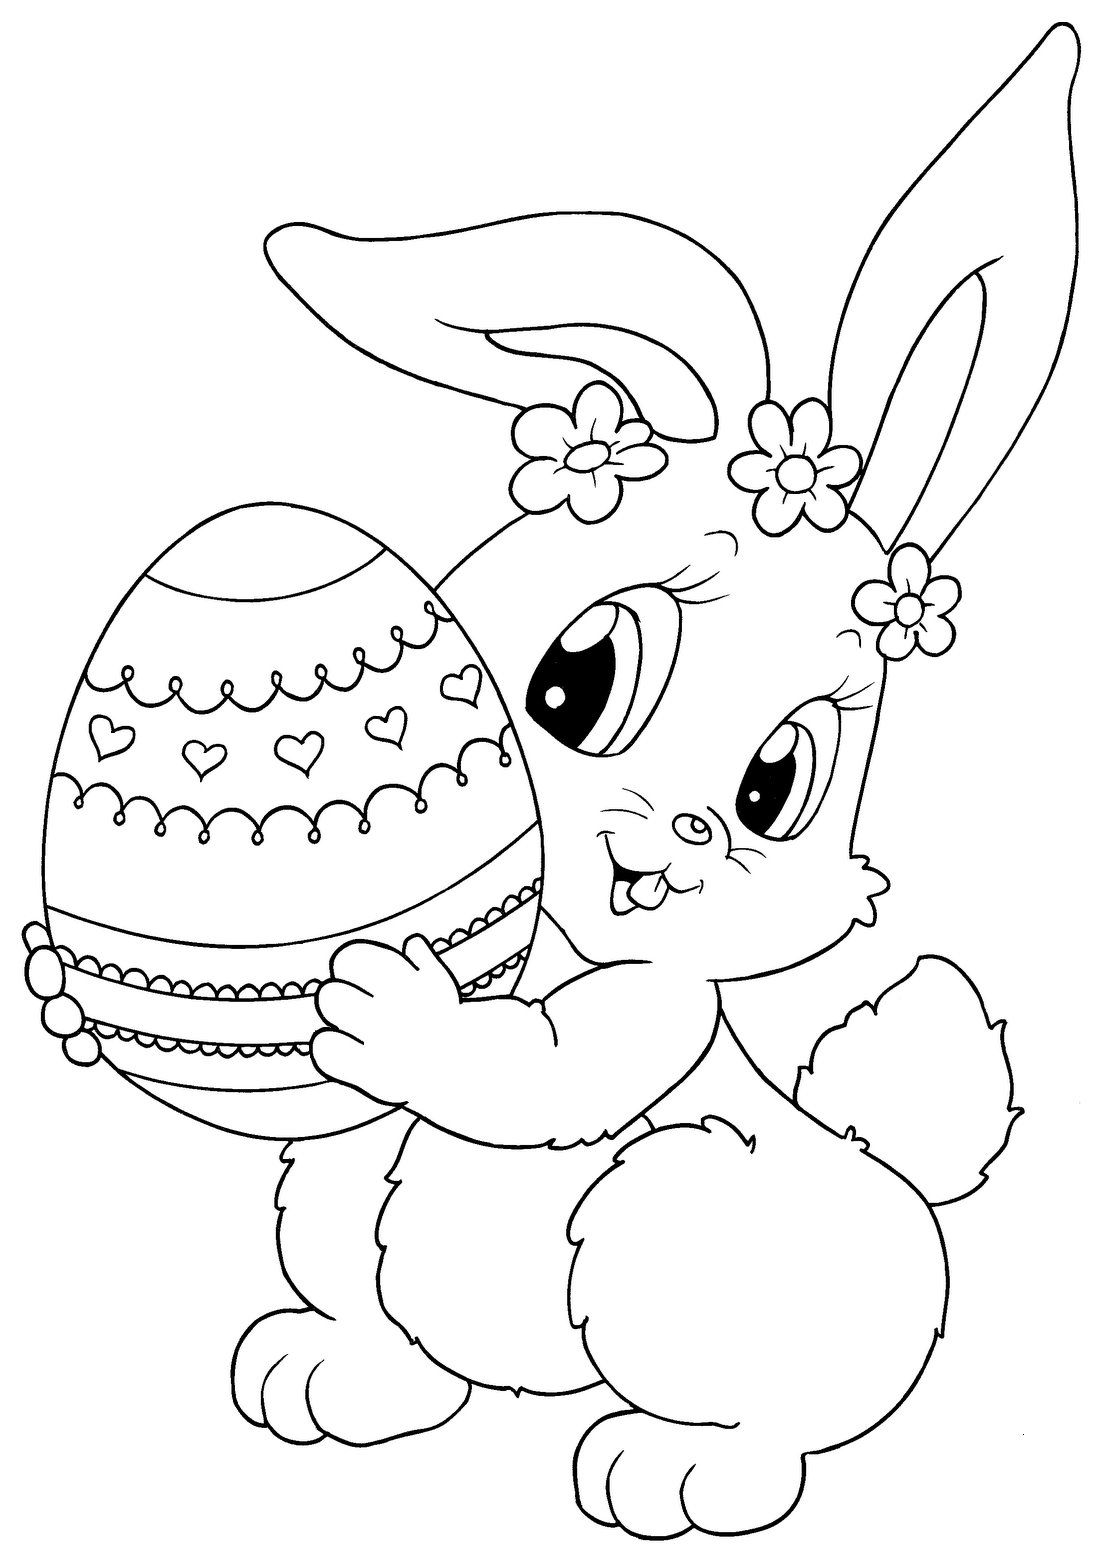 Bunny With Tulip Coloring Page Free Printable Ebook Bunny